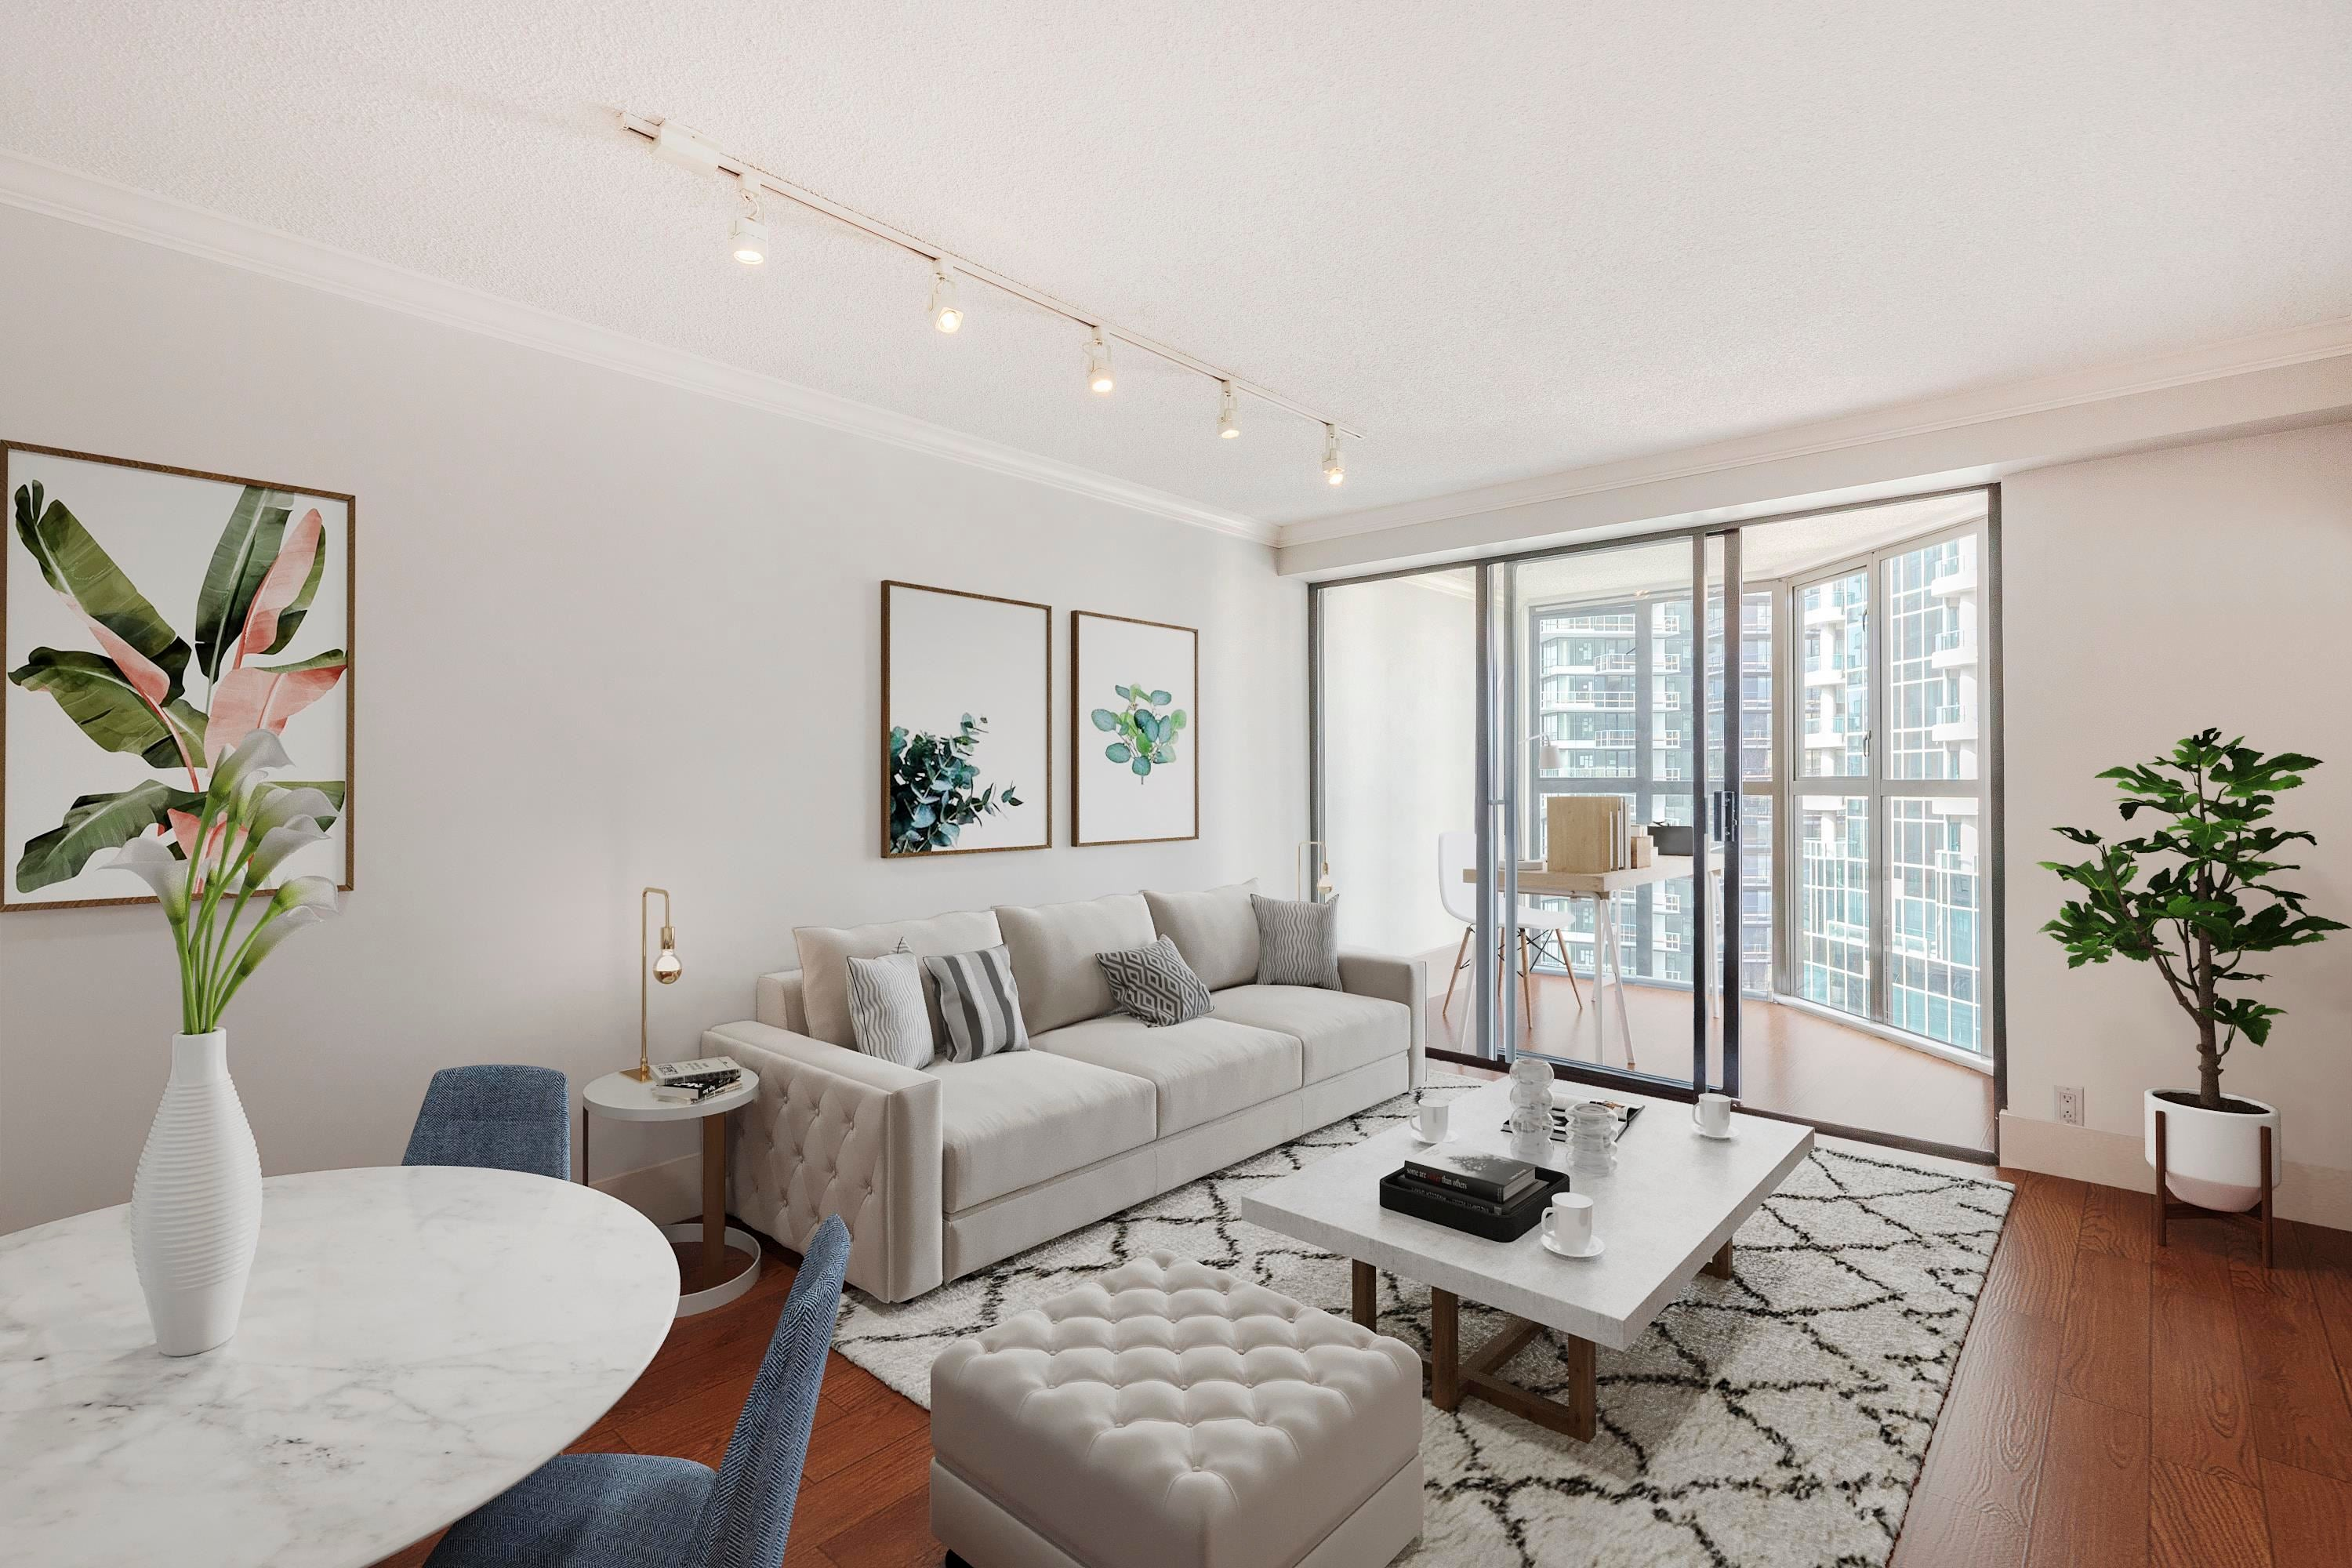 1203 789 DRAKE STREET - Downtown VW Apartment/Condo for sale, 1 Bedroom (R2625443) - #1